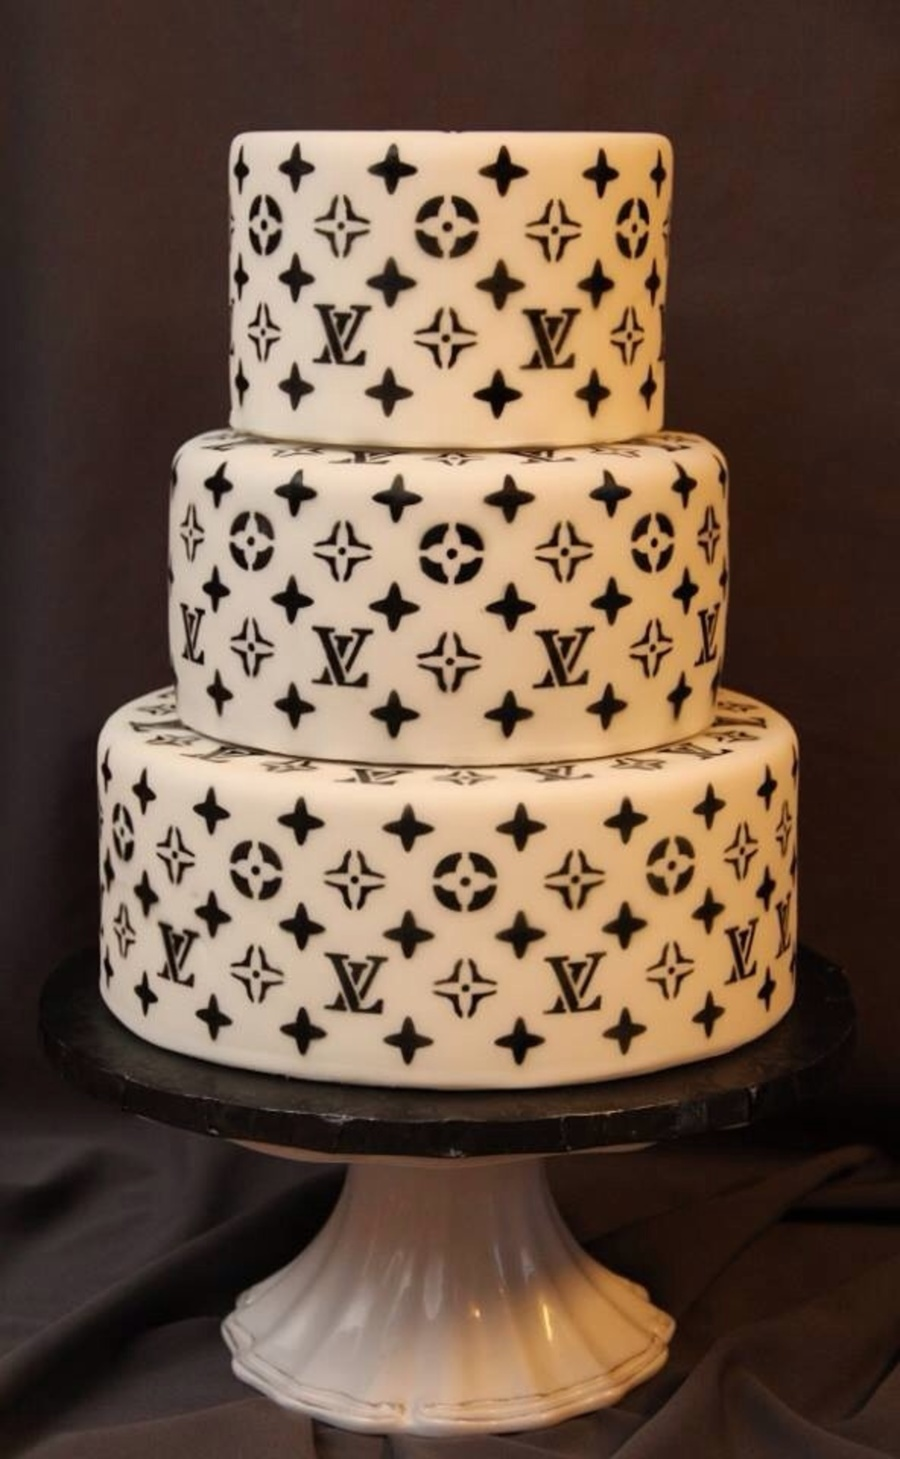 Louis Vuitton Cake Print Airbrushed On With A Stencil Top